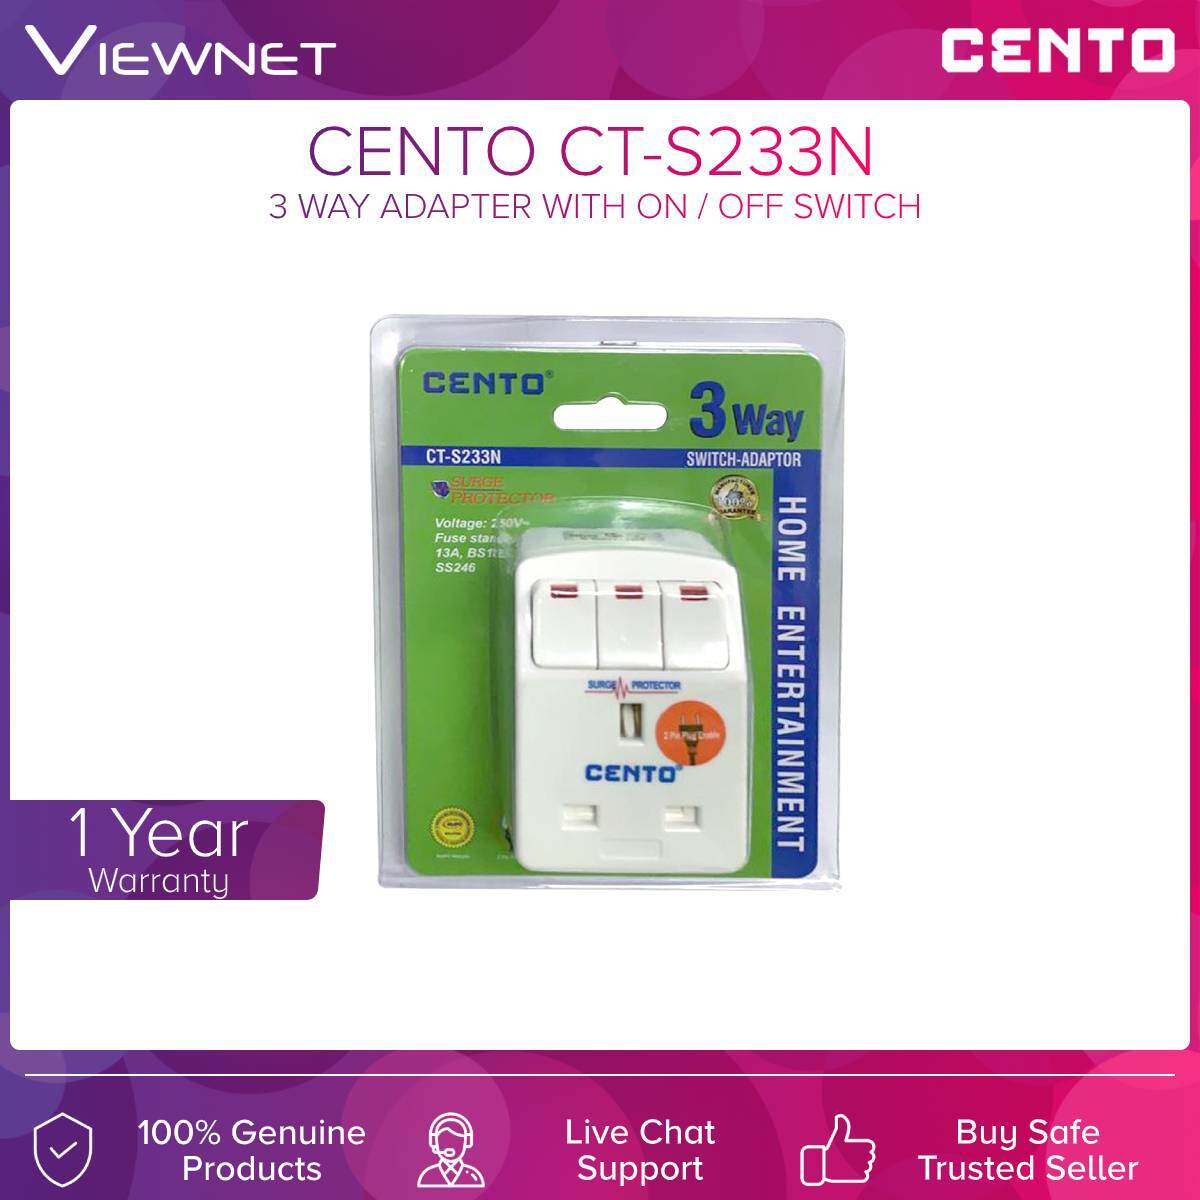 Cento (CT-S233N) 3 Way Adapter with On / Off Switch